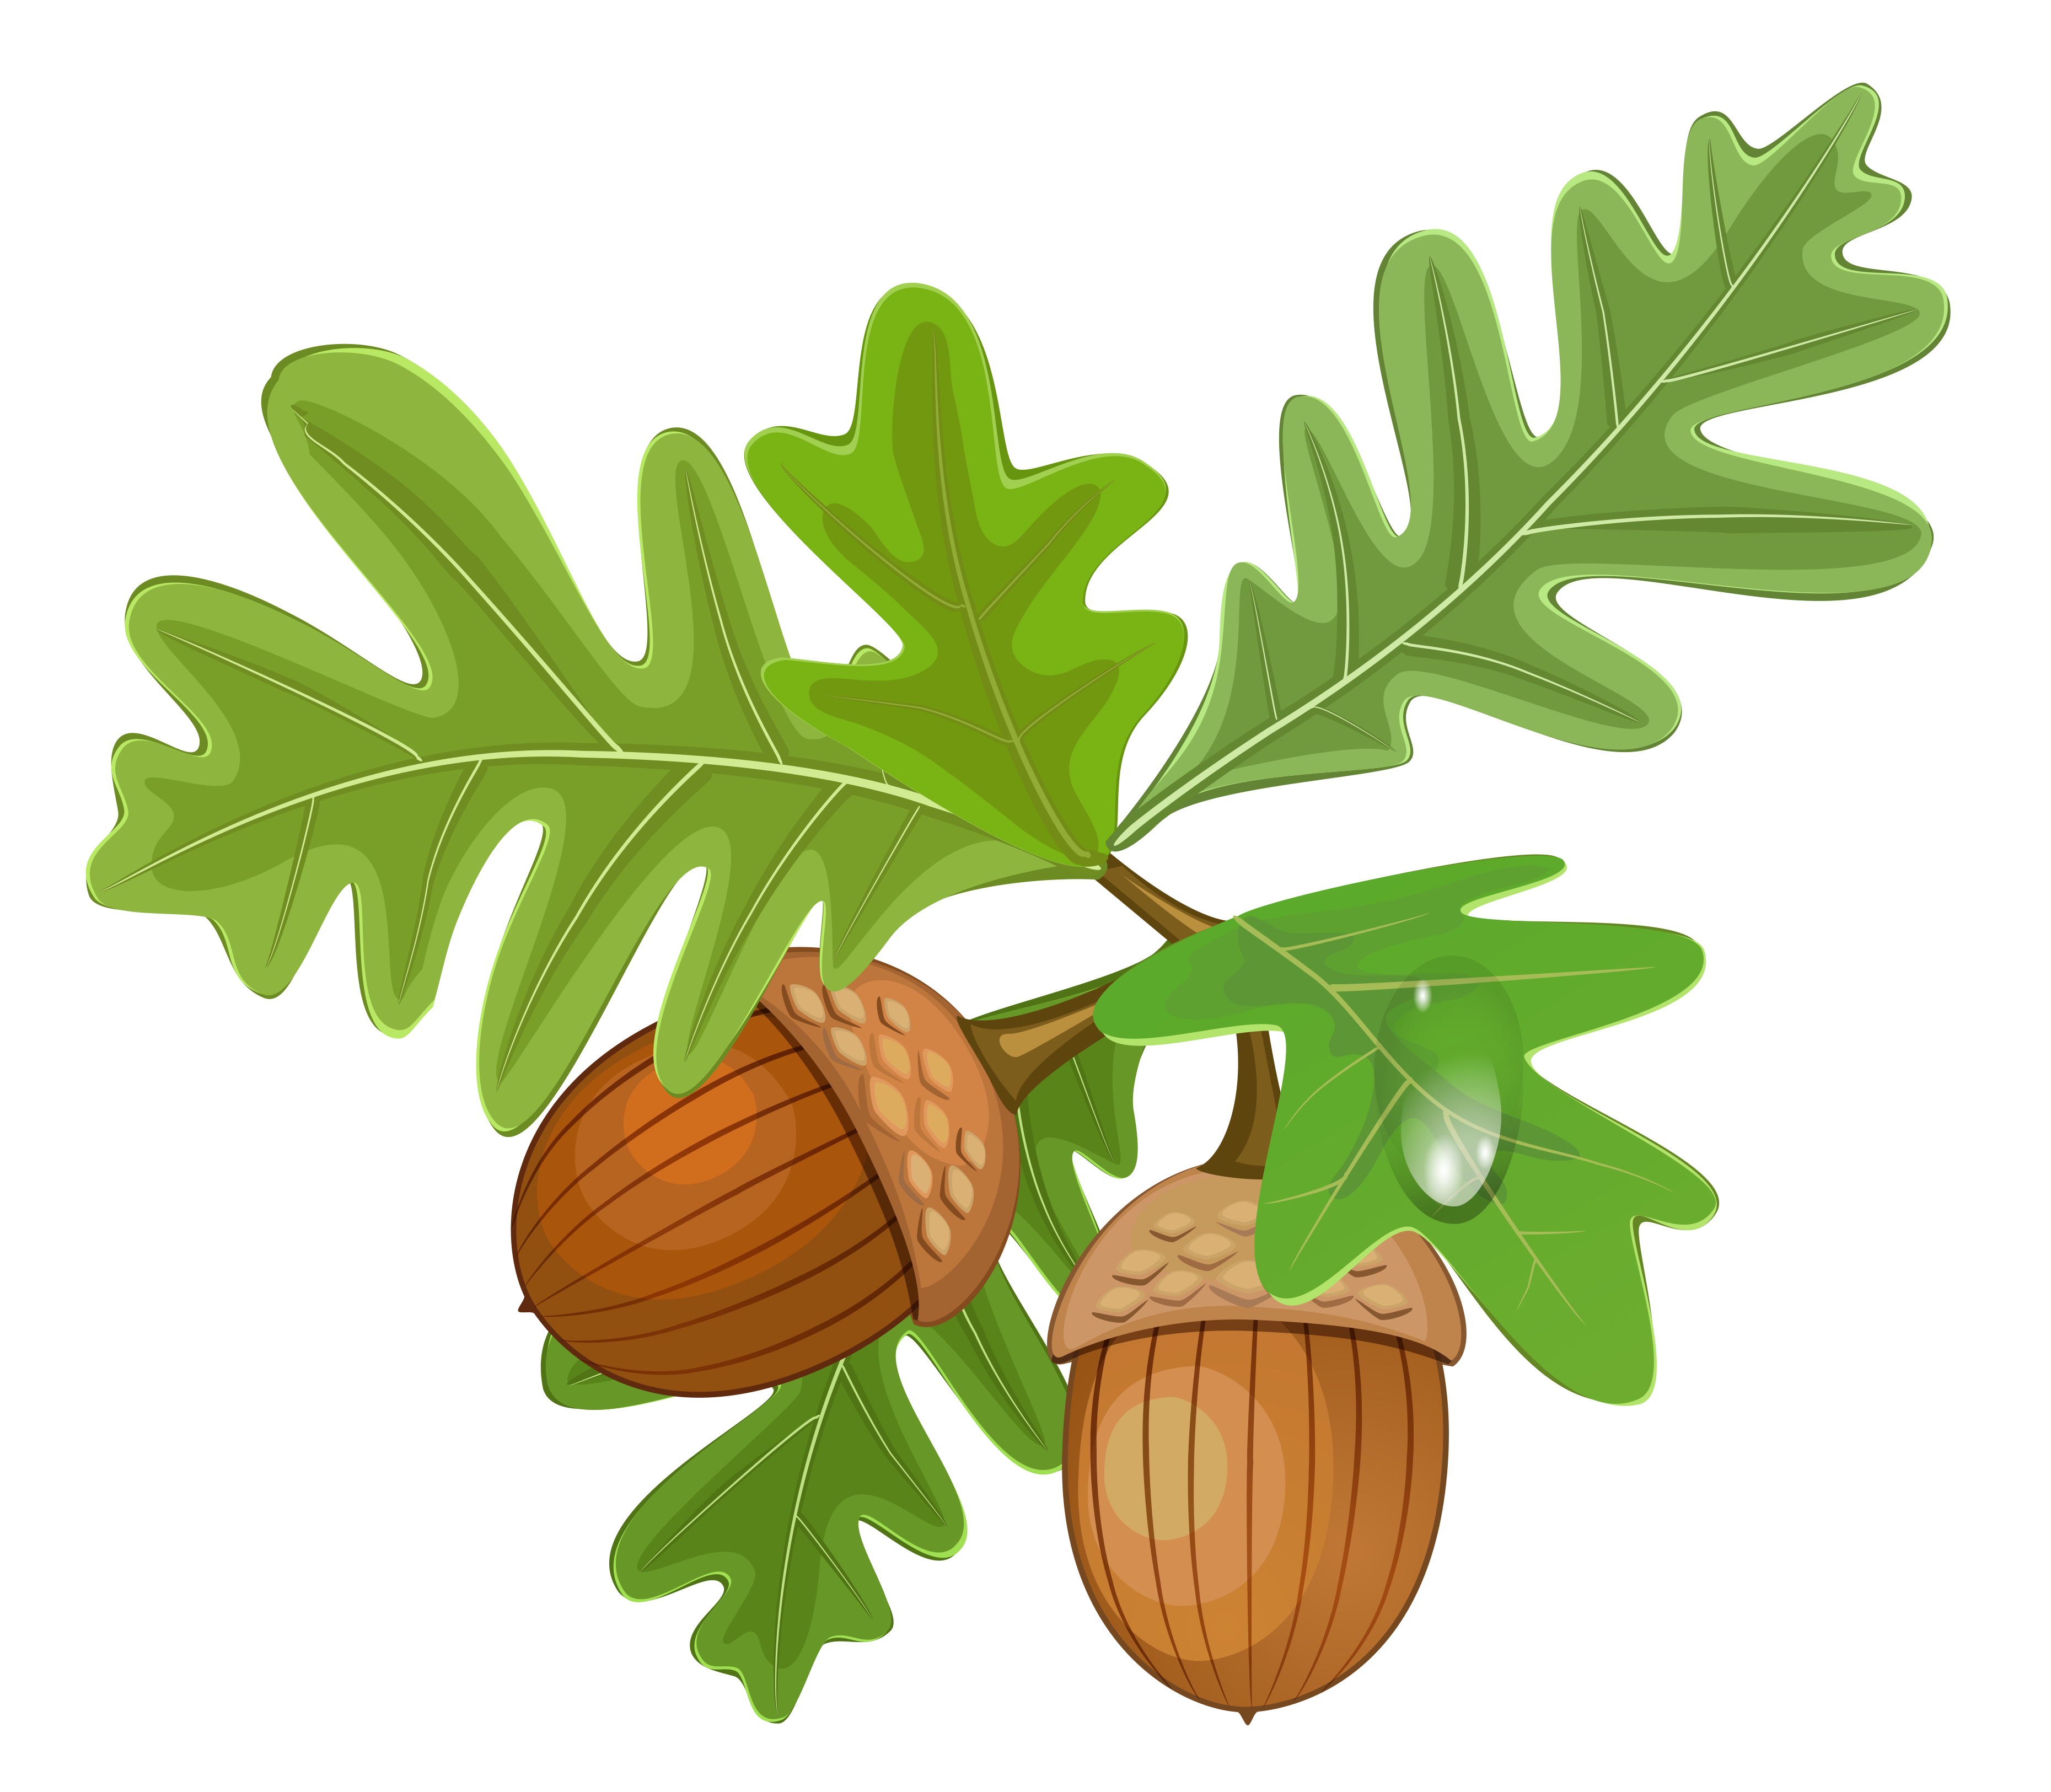 Transparent Leaves with Acorns.